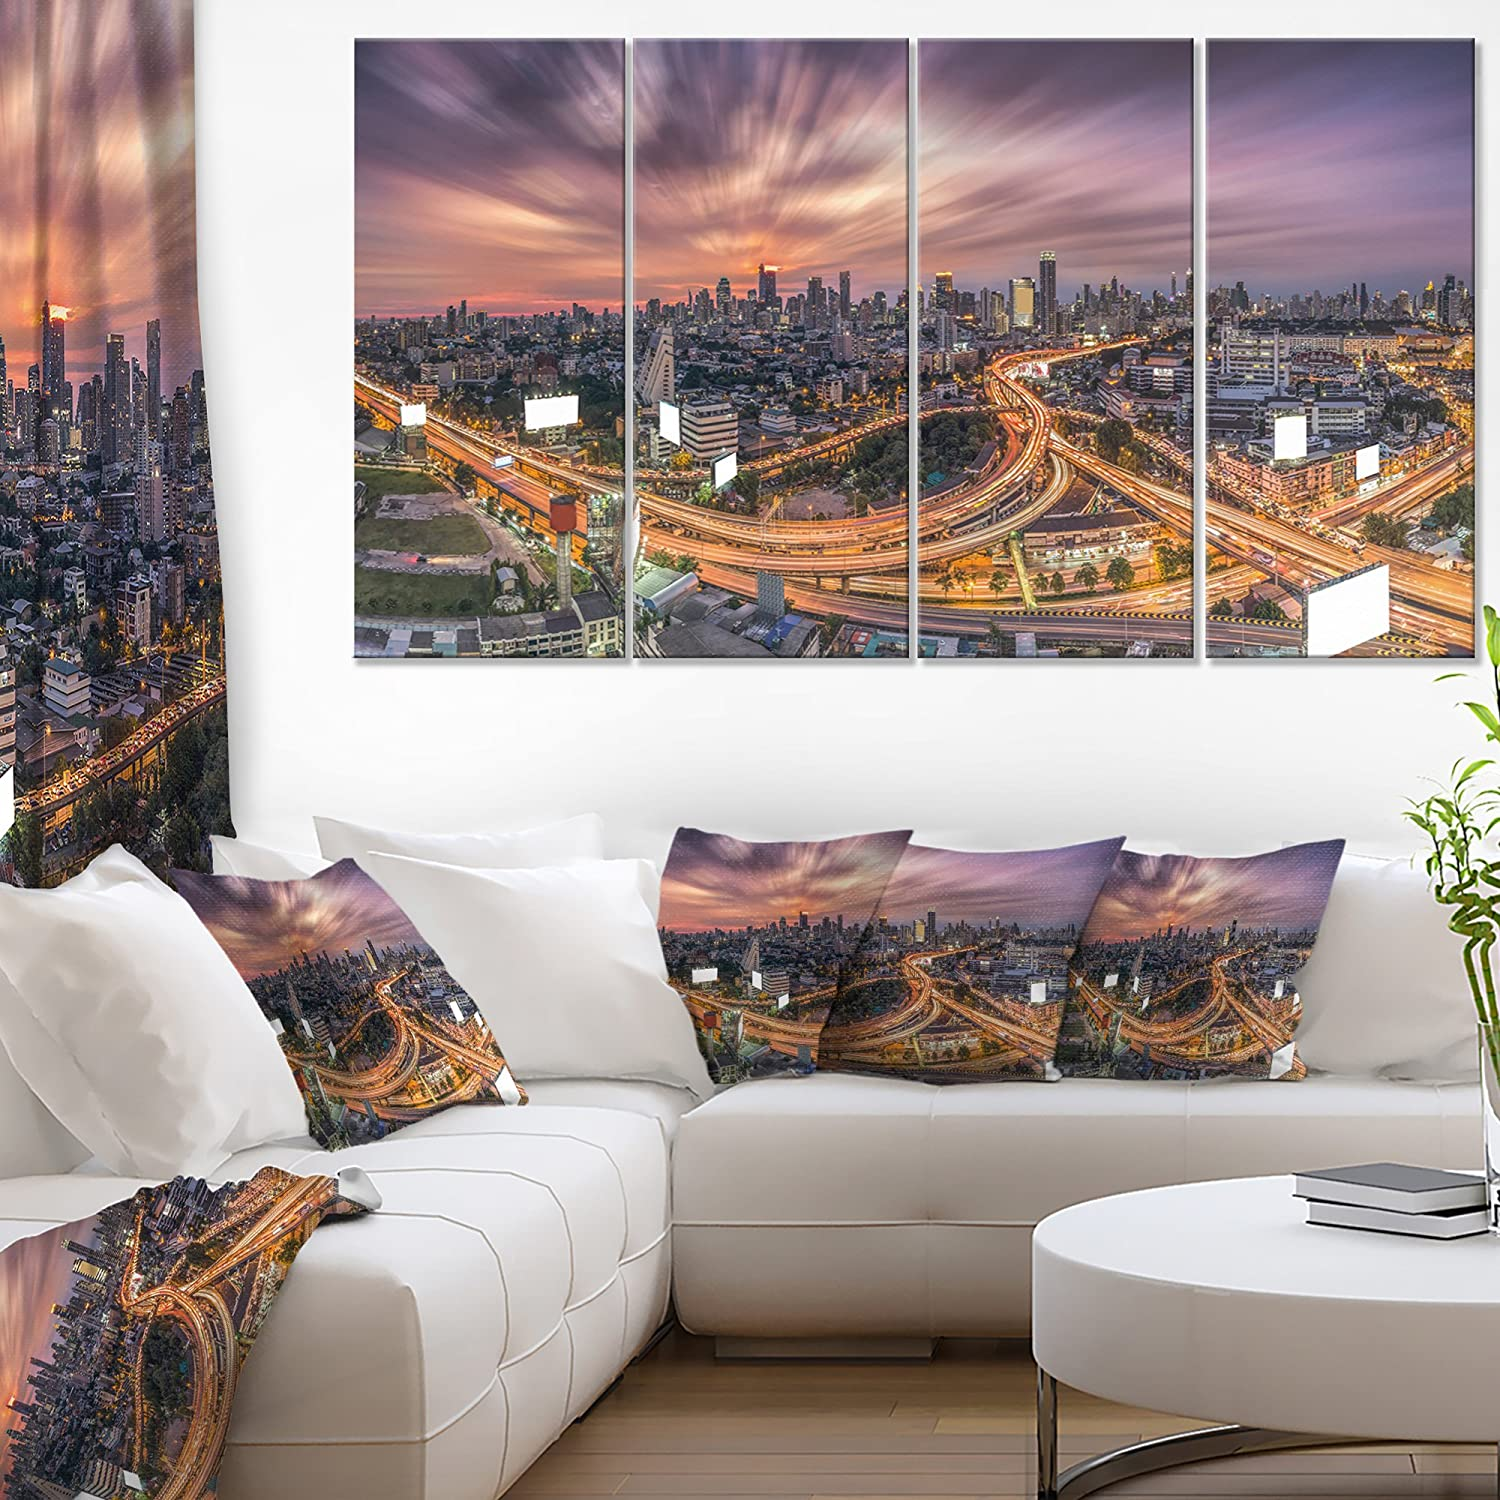 Designart Bangkok S Shaped Express Way Cityscape Artwork Canvas 60x28 5 Piece Pt11232 401 60x28 5 Equal Panels Posters Prints